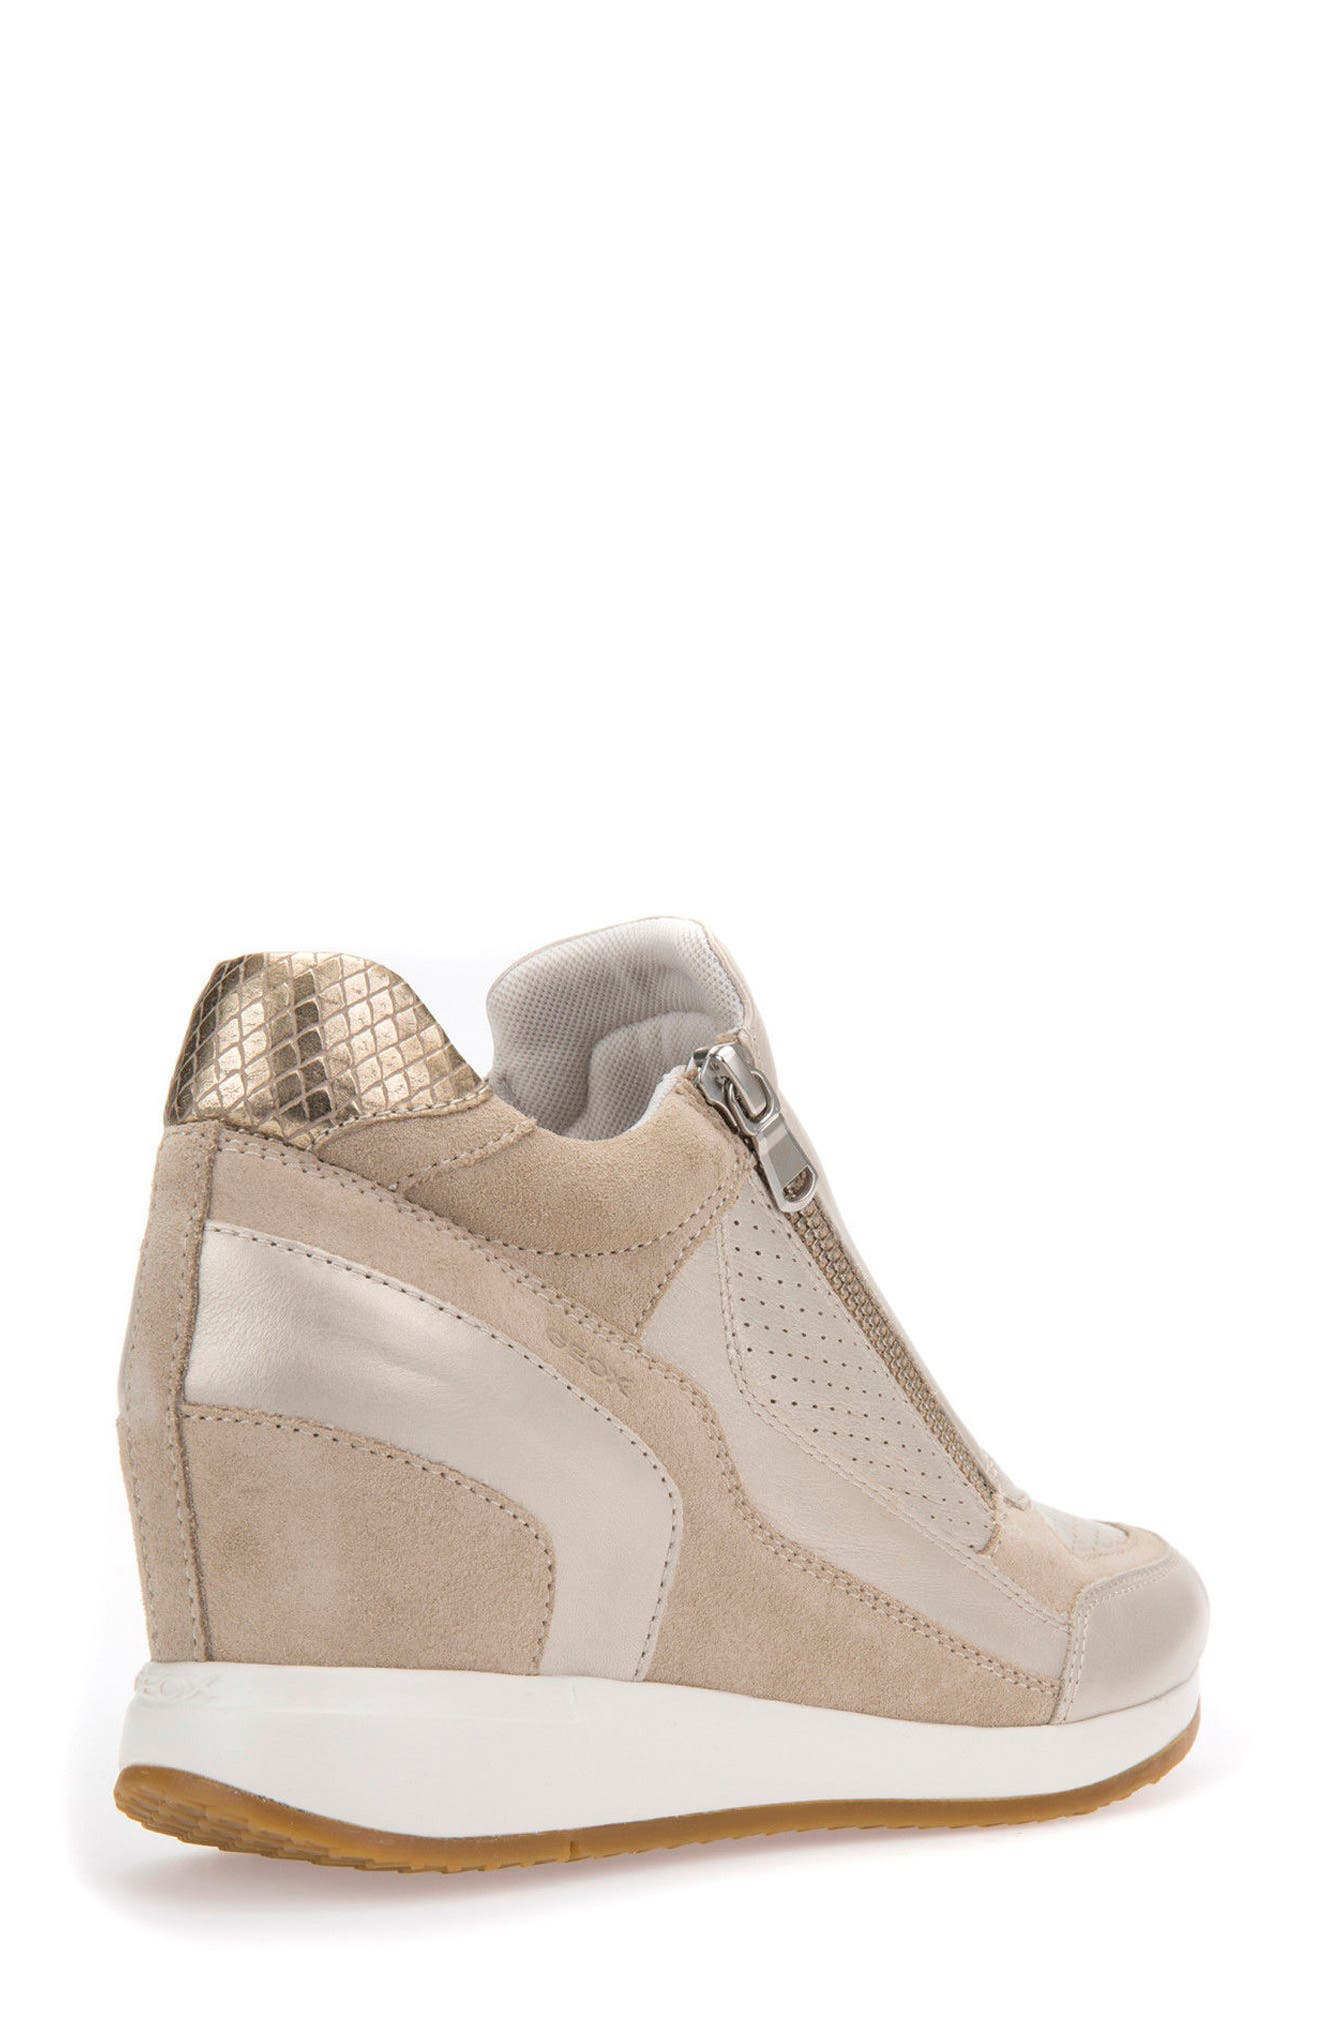 Nydame Wedge Sneaker,                             Alternate thumbnail 2, color,                             PLATINUM LEATHER